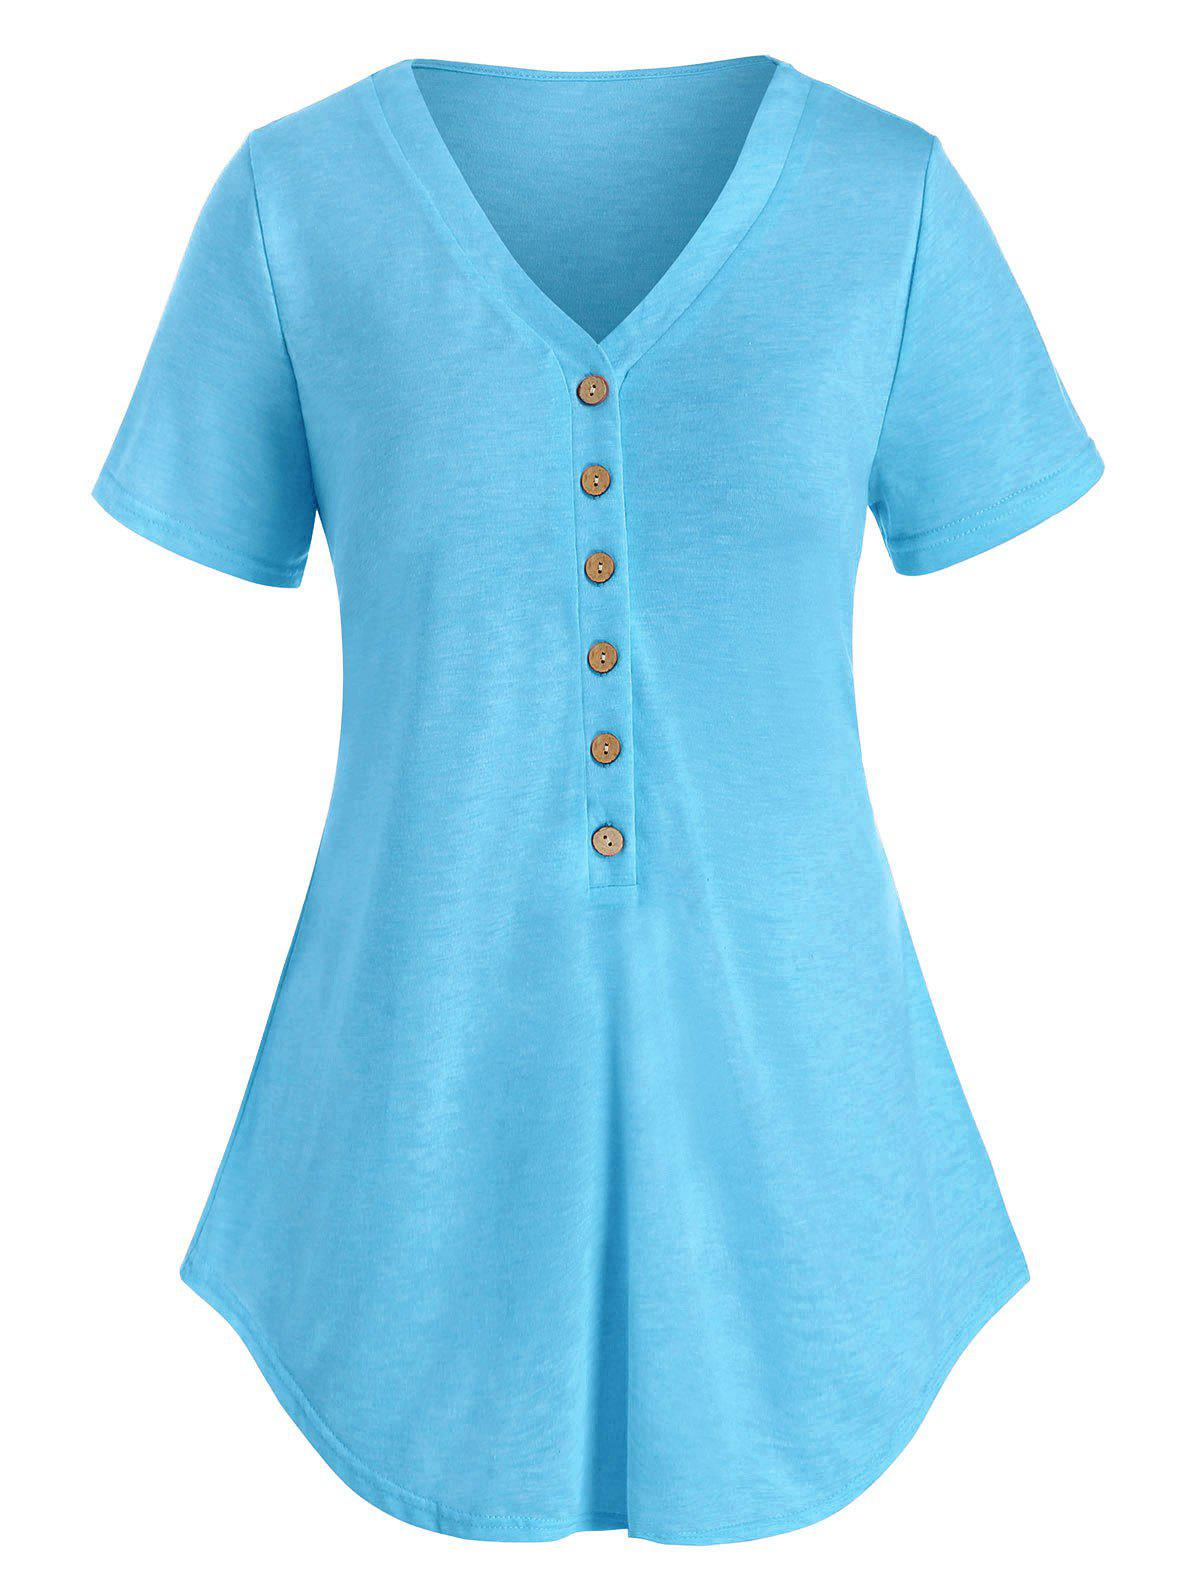 Plus Size Half Button Heathered Curved T Shirt Rosegal